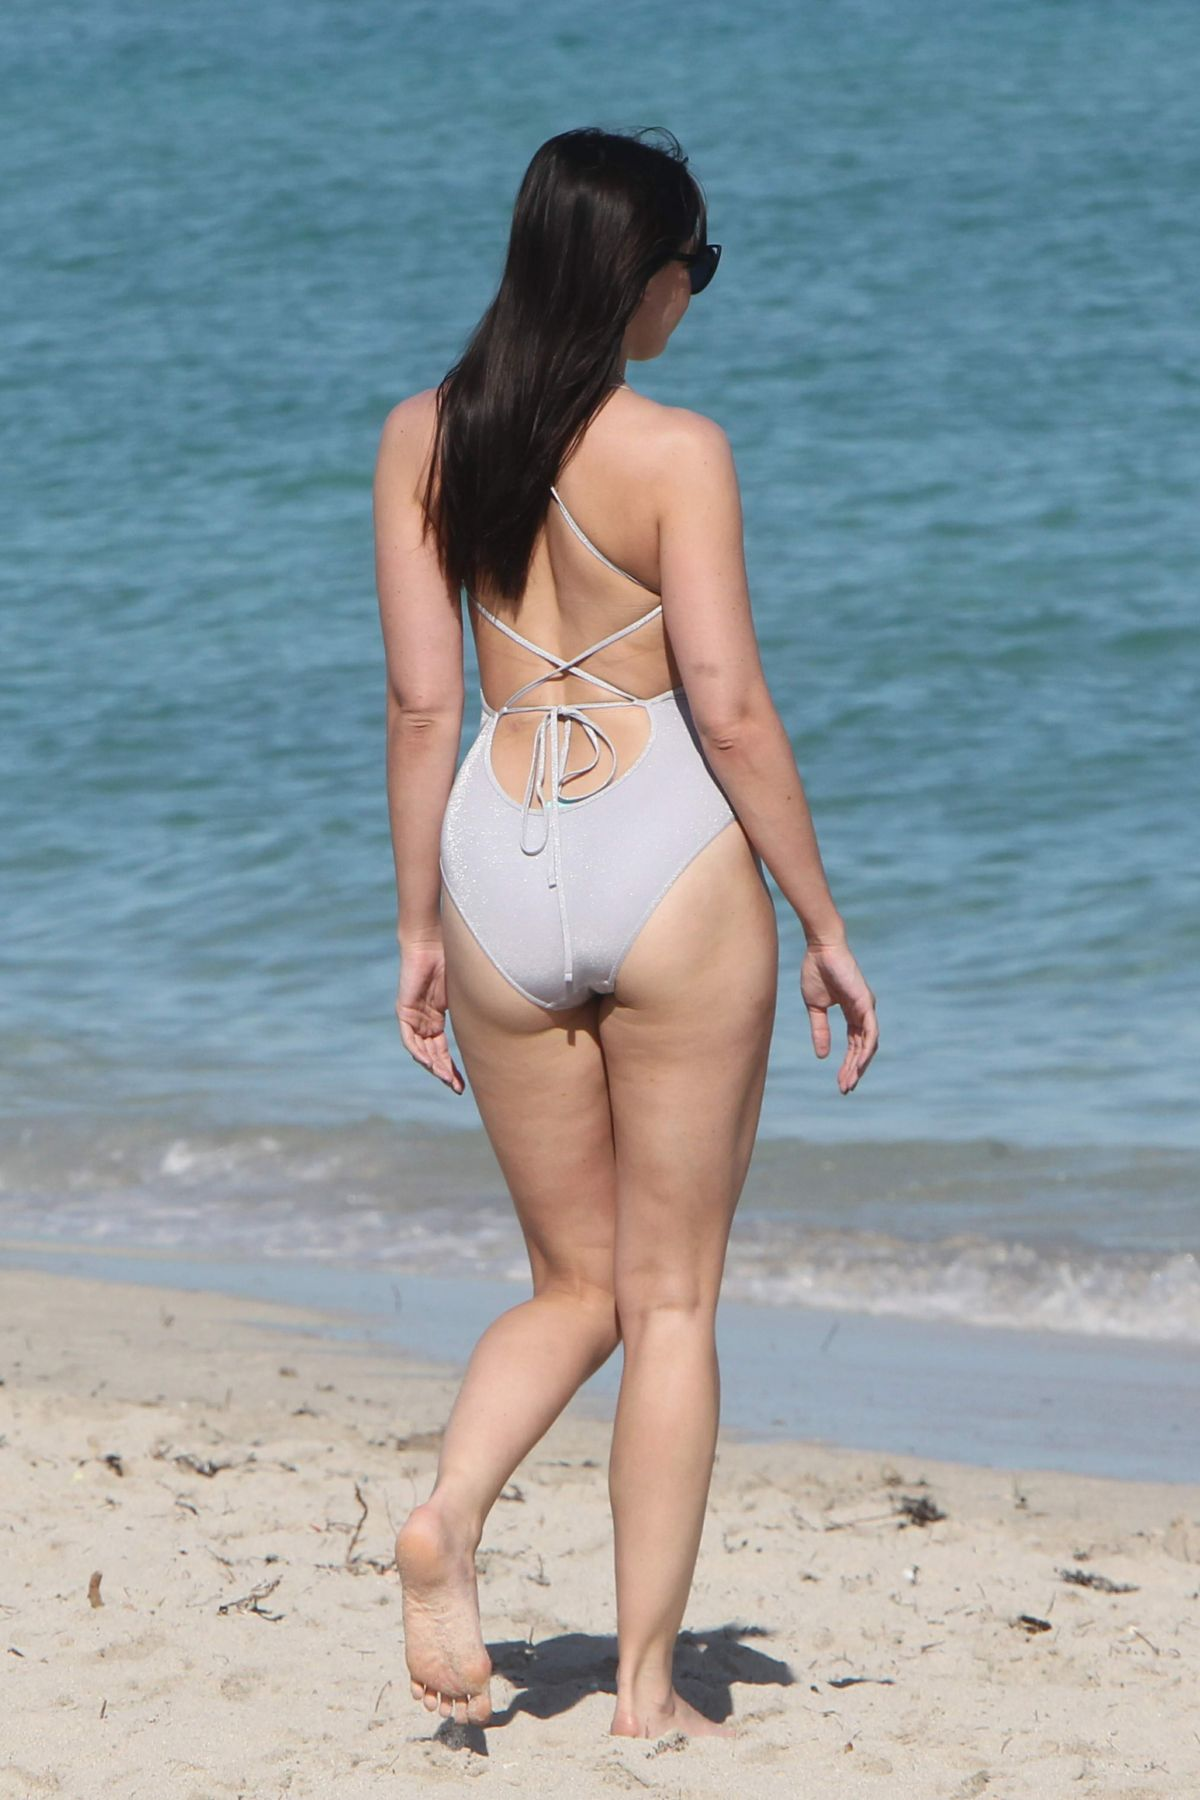 DAISY LOWE In Swimsuit At A Beach In Miami 01052017 HawtCelebs